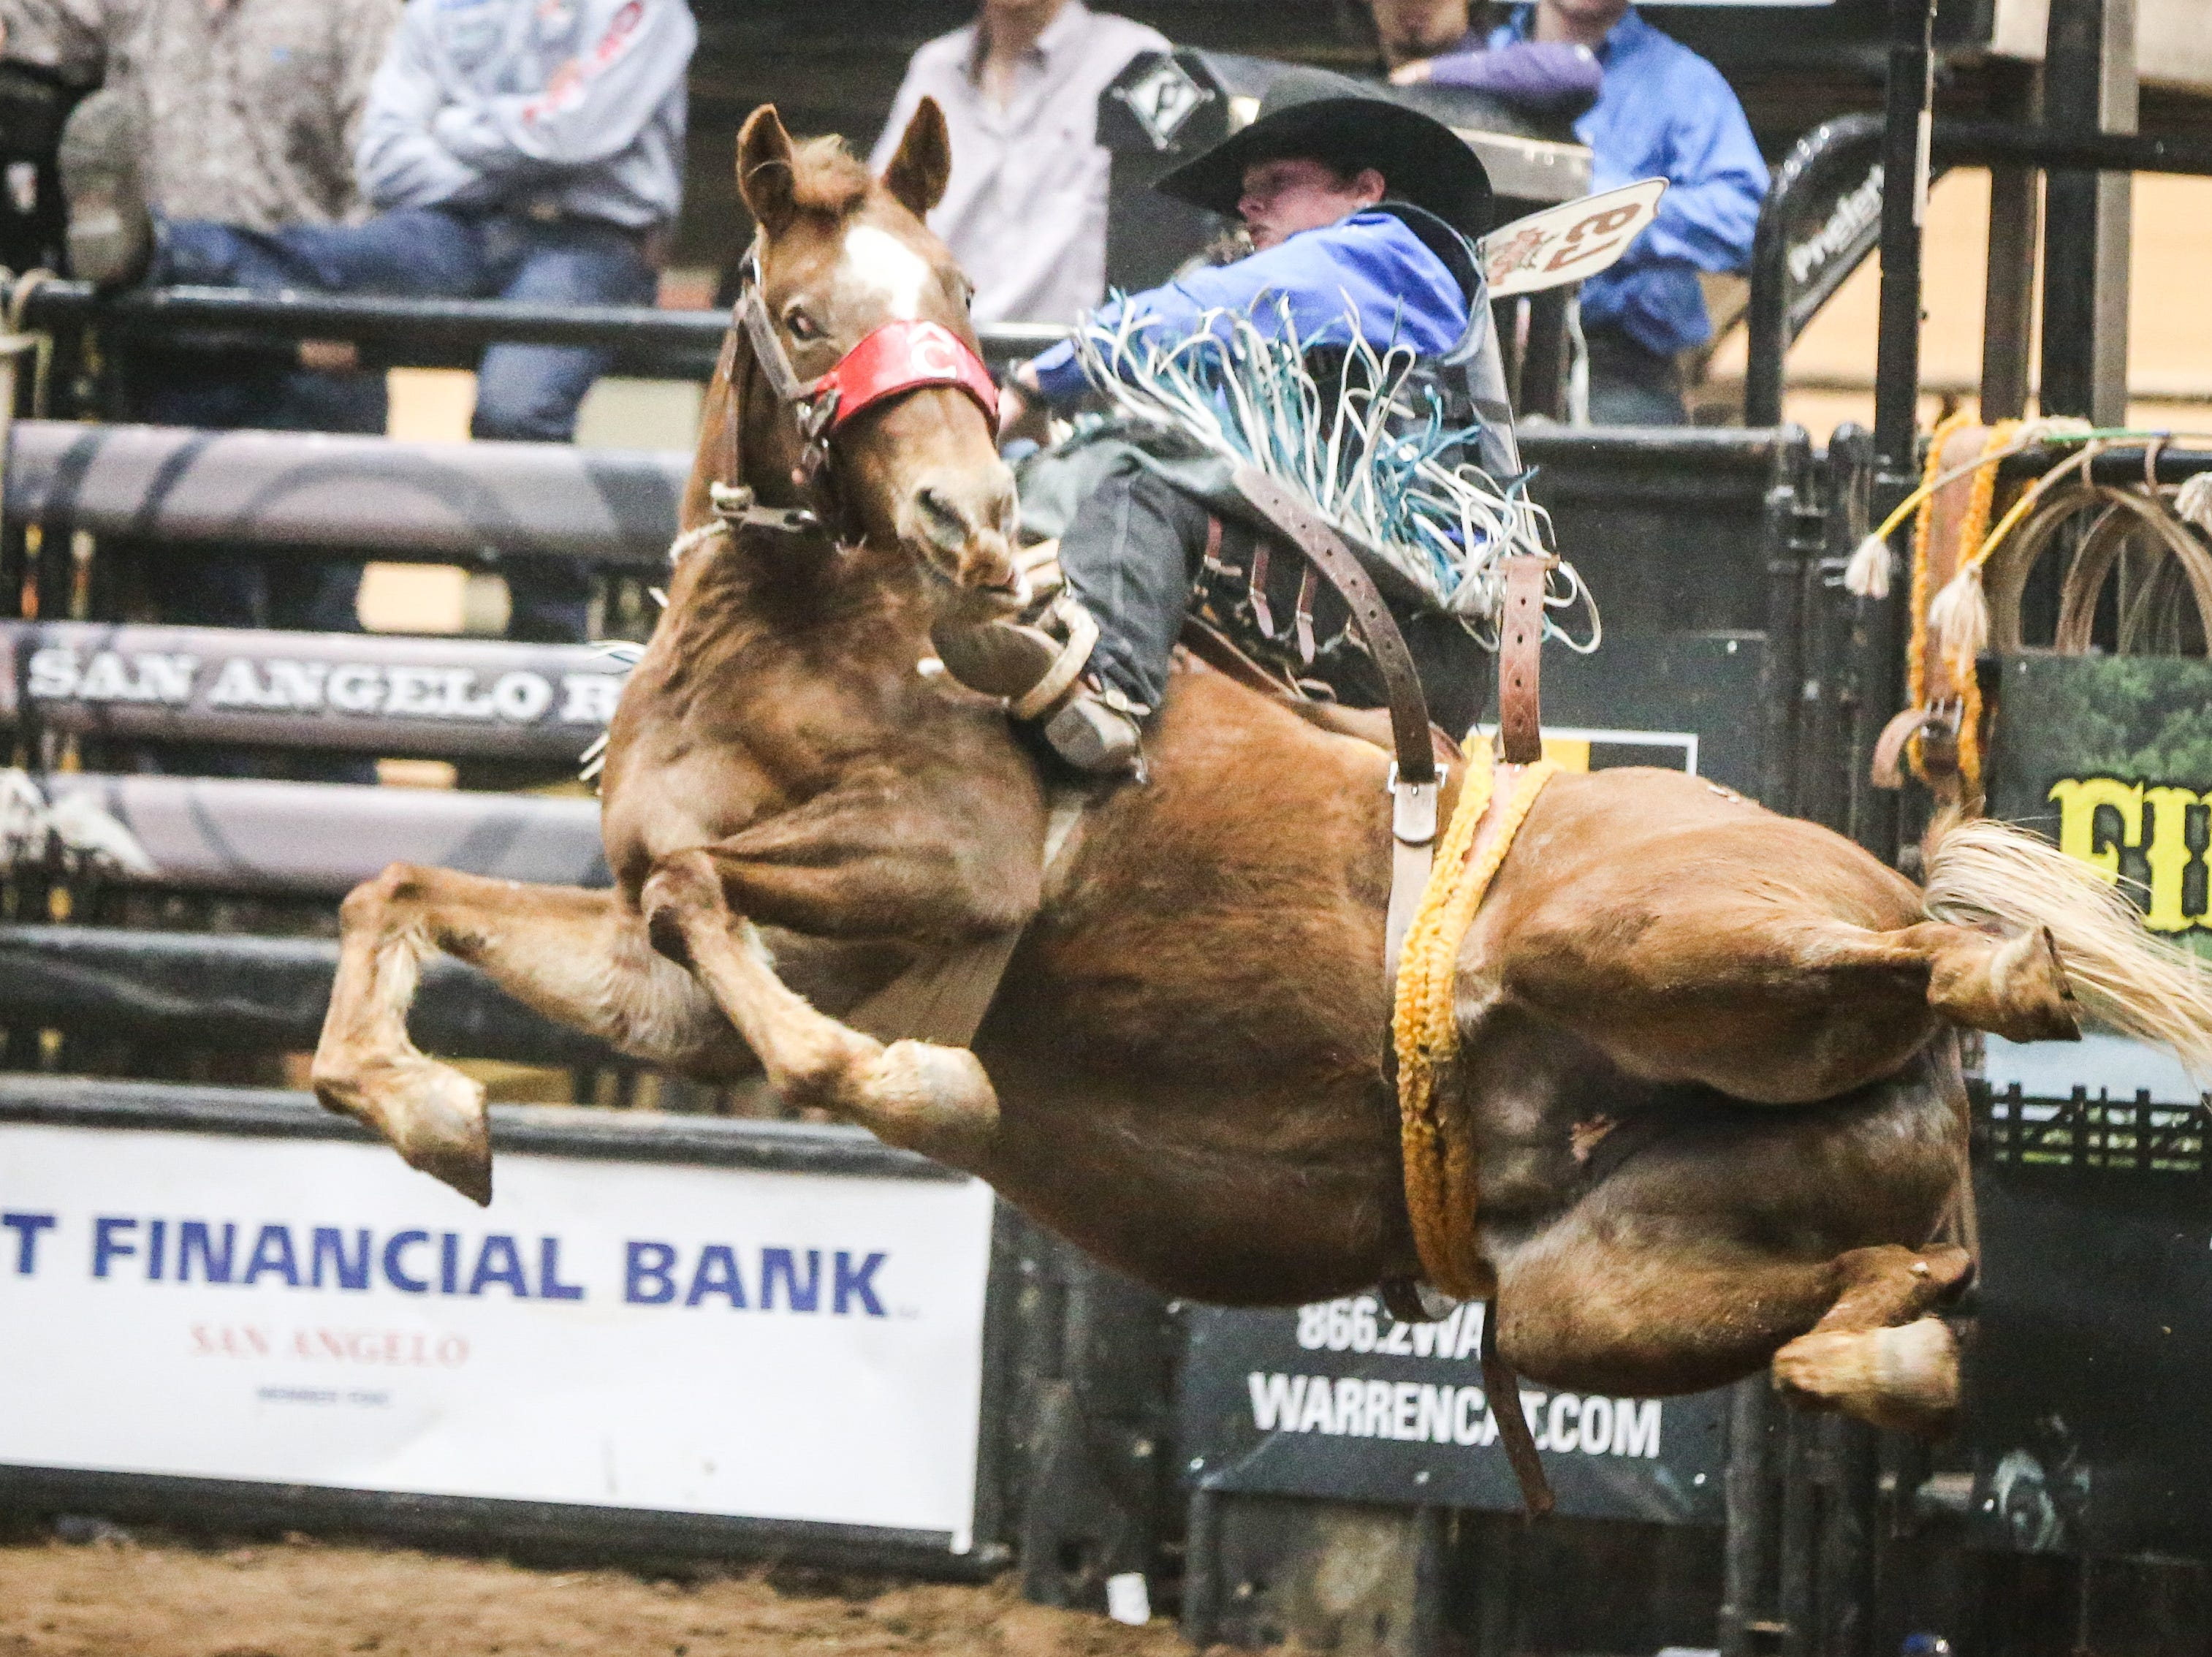 Ryder Wright and Sweet Maria fall on the last jump in their 8-second ride during Cinch Chute Out Saturday, Feb. 16, 2019, at Foster Communications Coliseum.